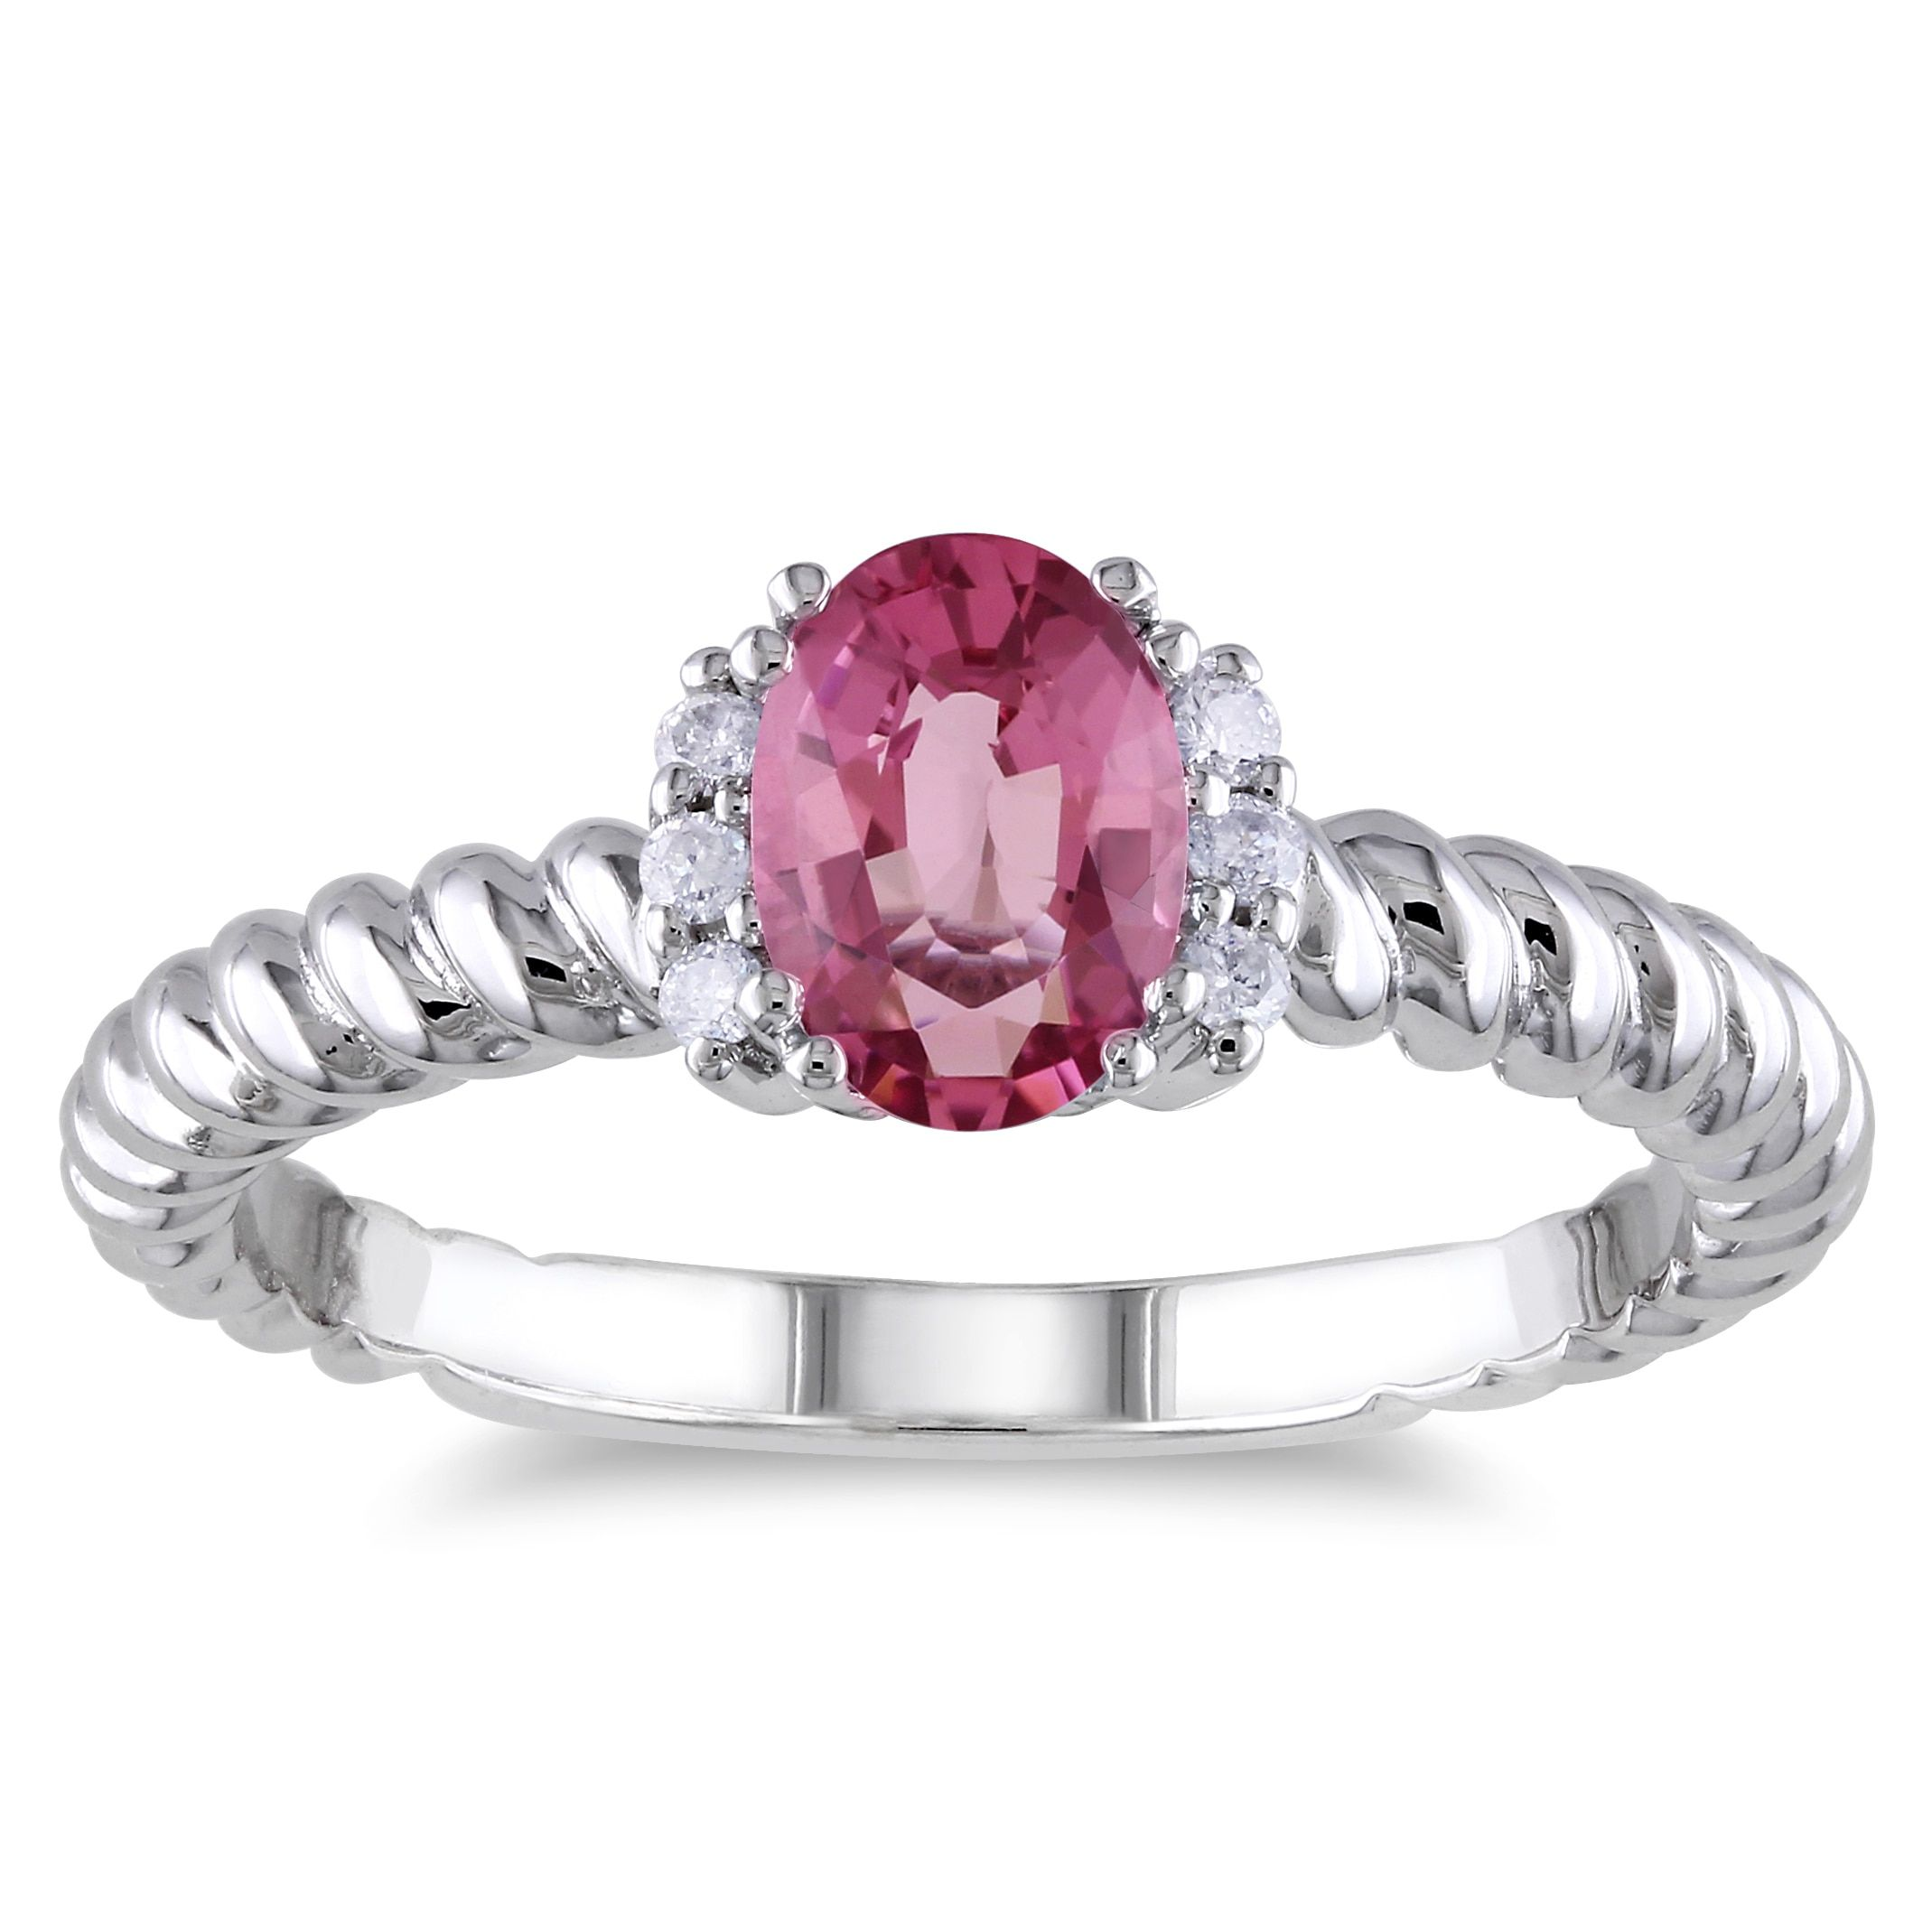 Miadora 10k White Gold Tourmaline and Diamond Accent Ring